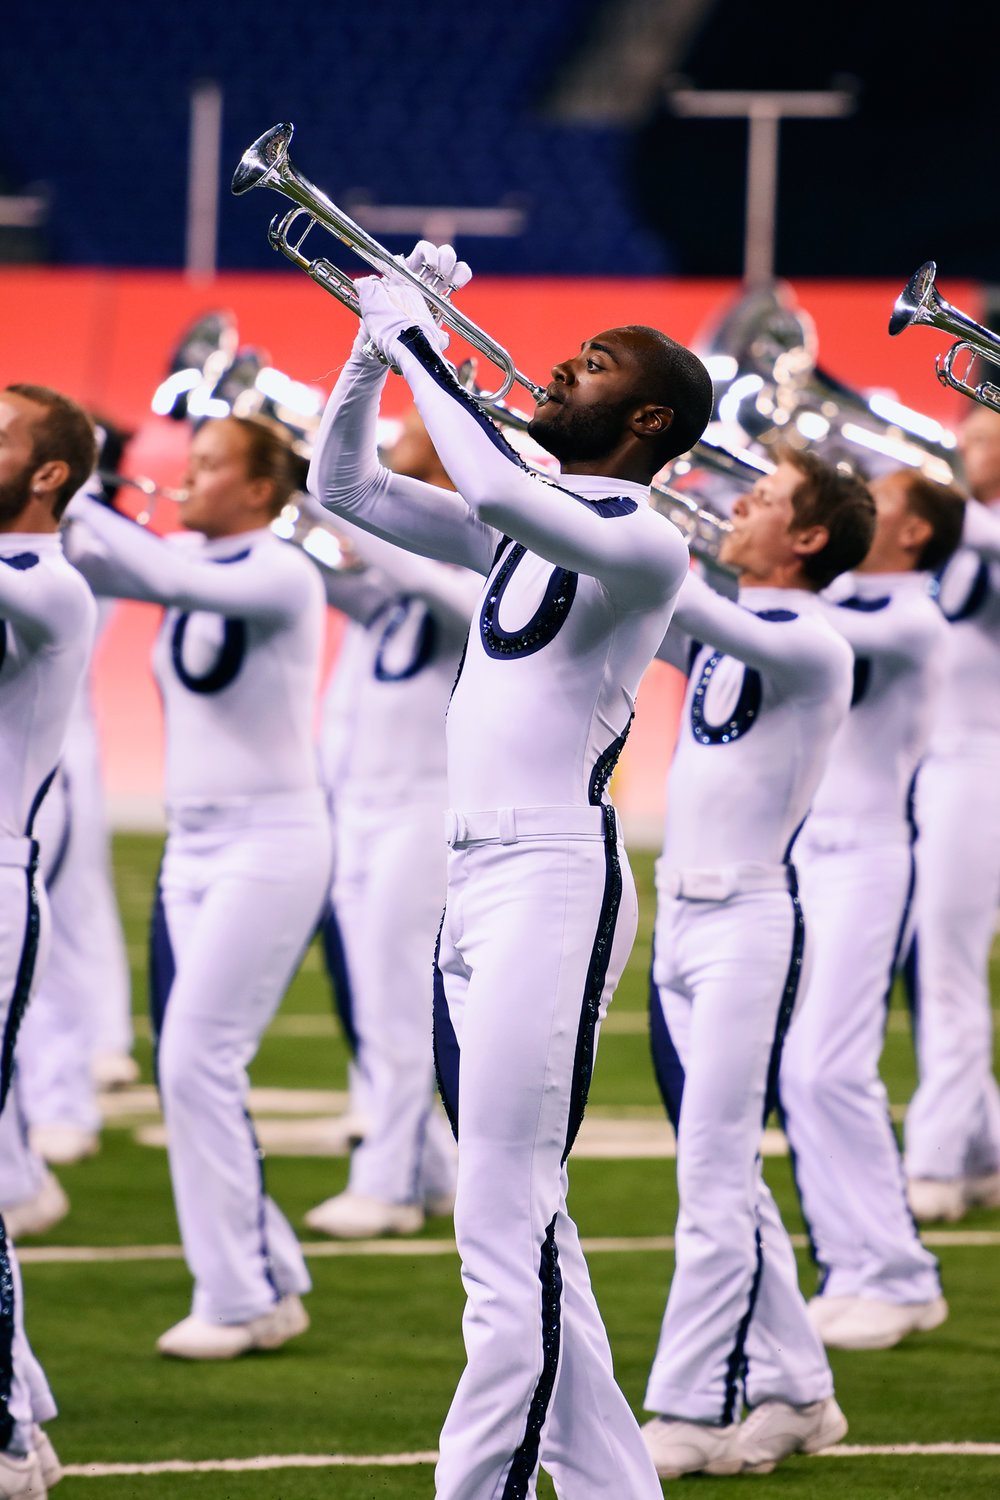 Bluecoats_H1_16_HiRes_RGB.jpg